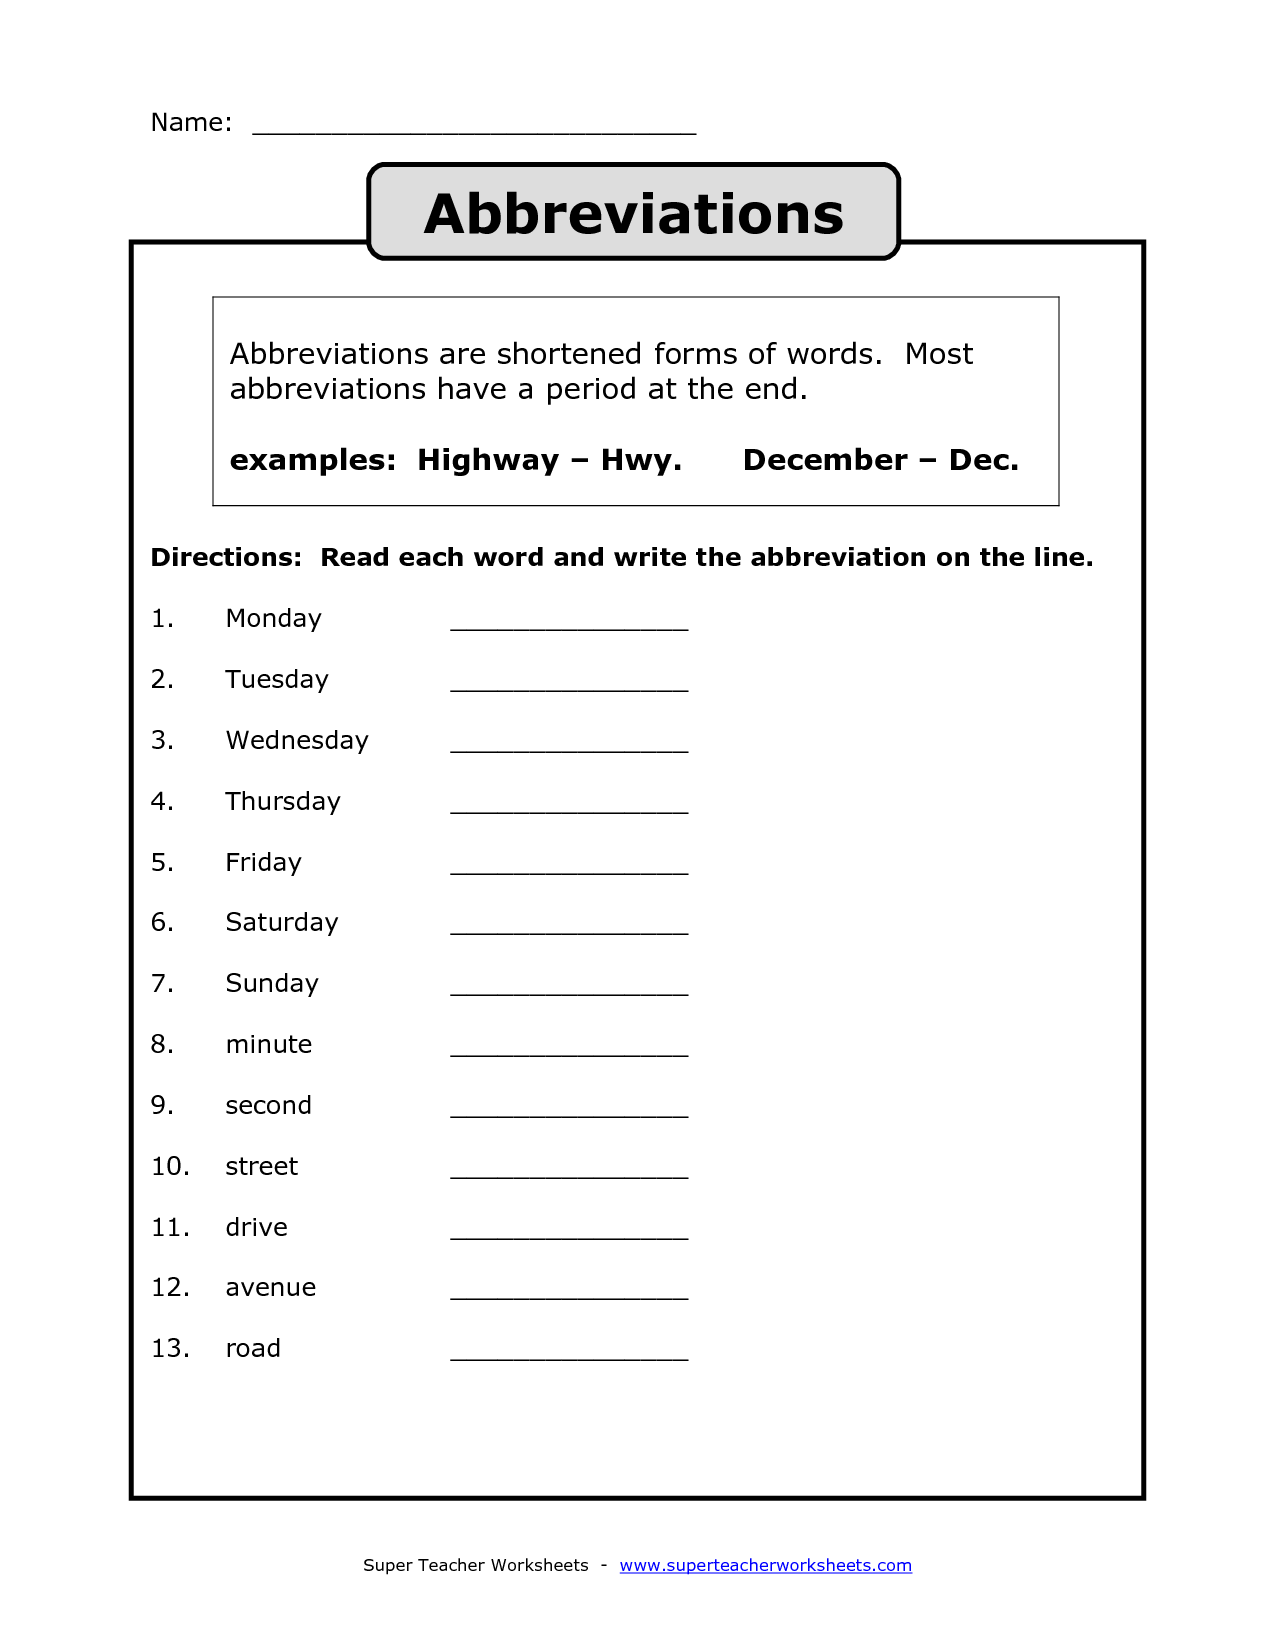 4 Best Images Of State Abbreviations Worksheet Printable